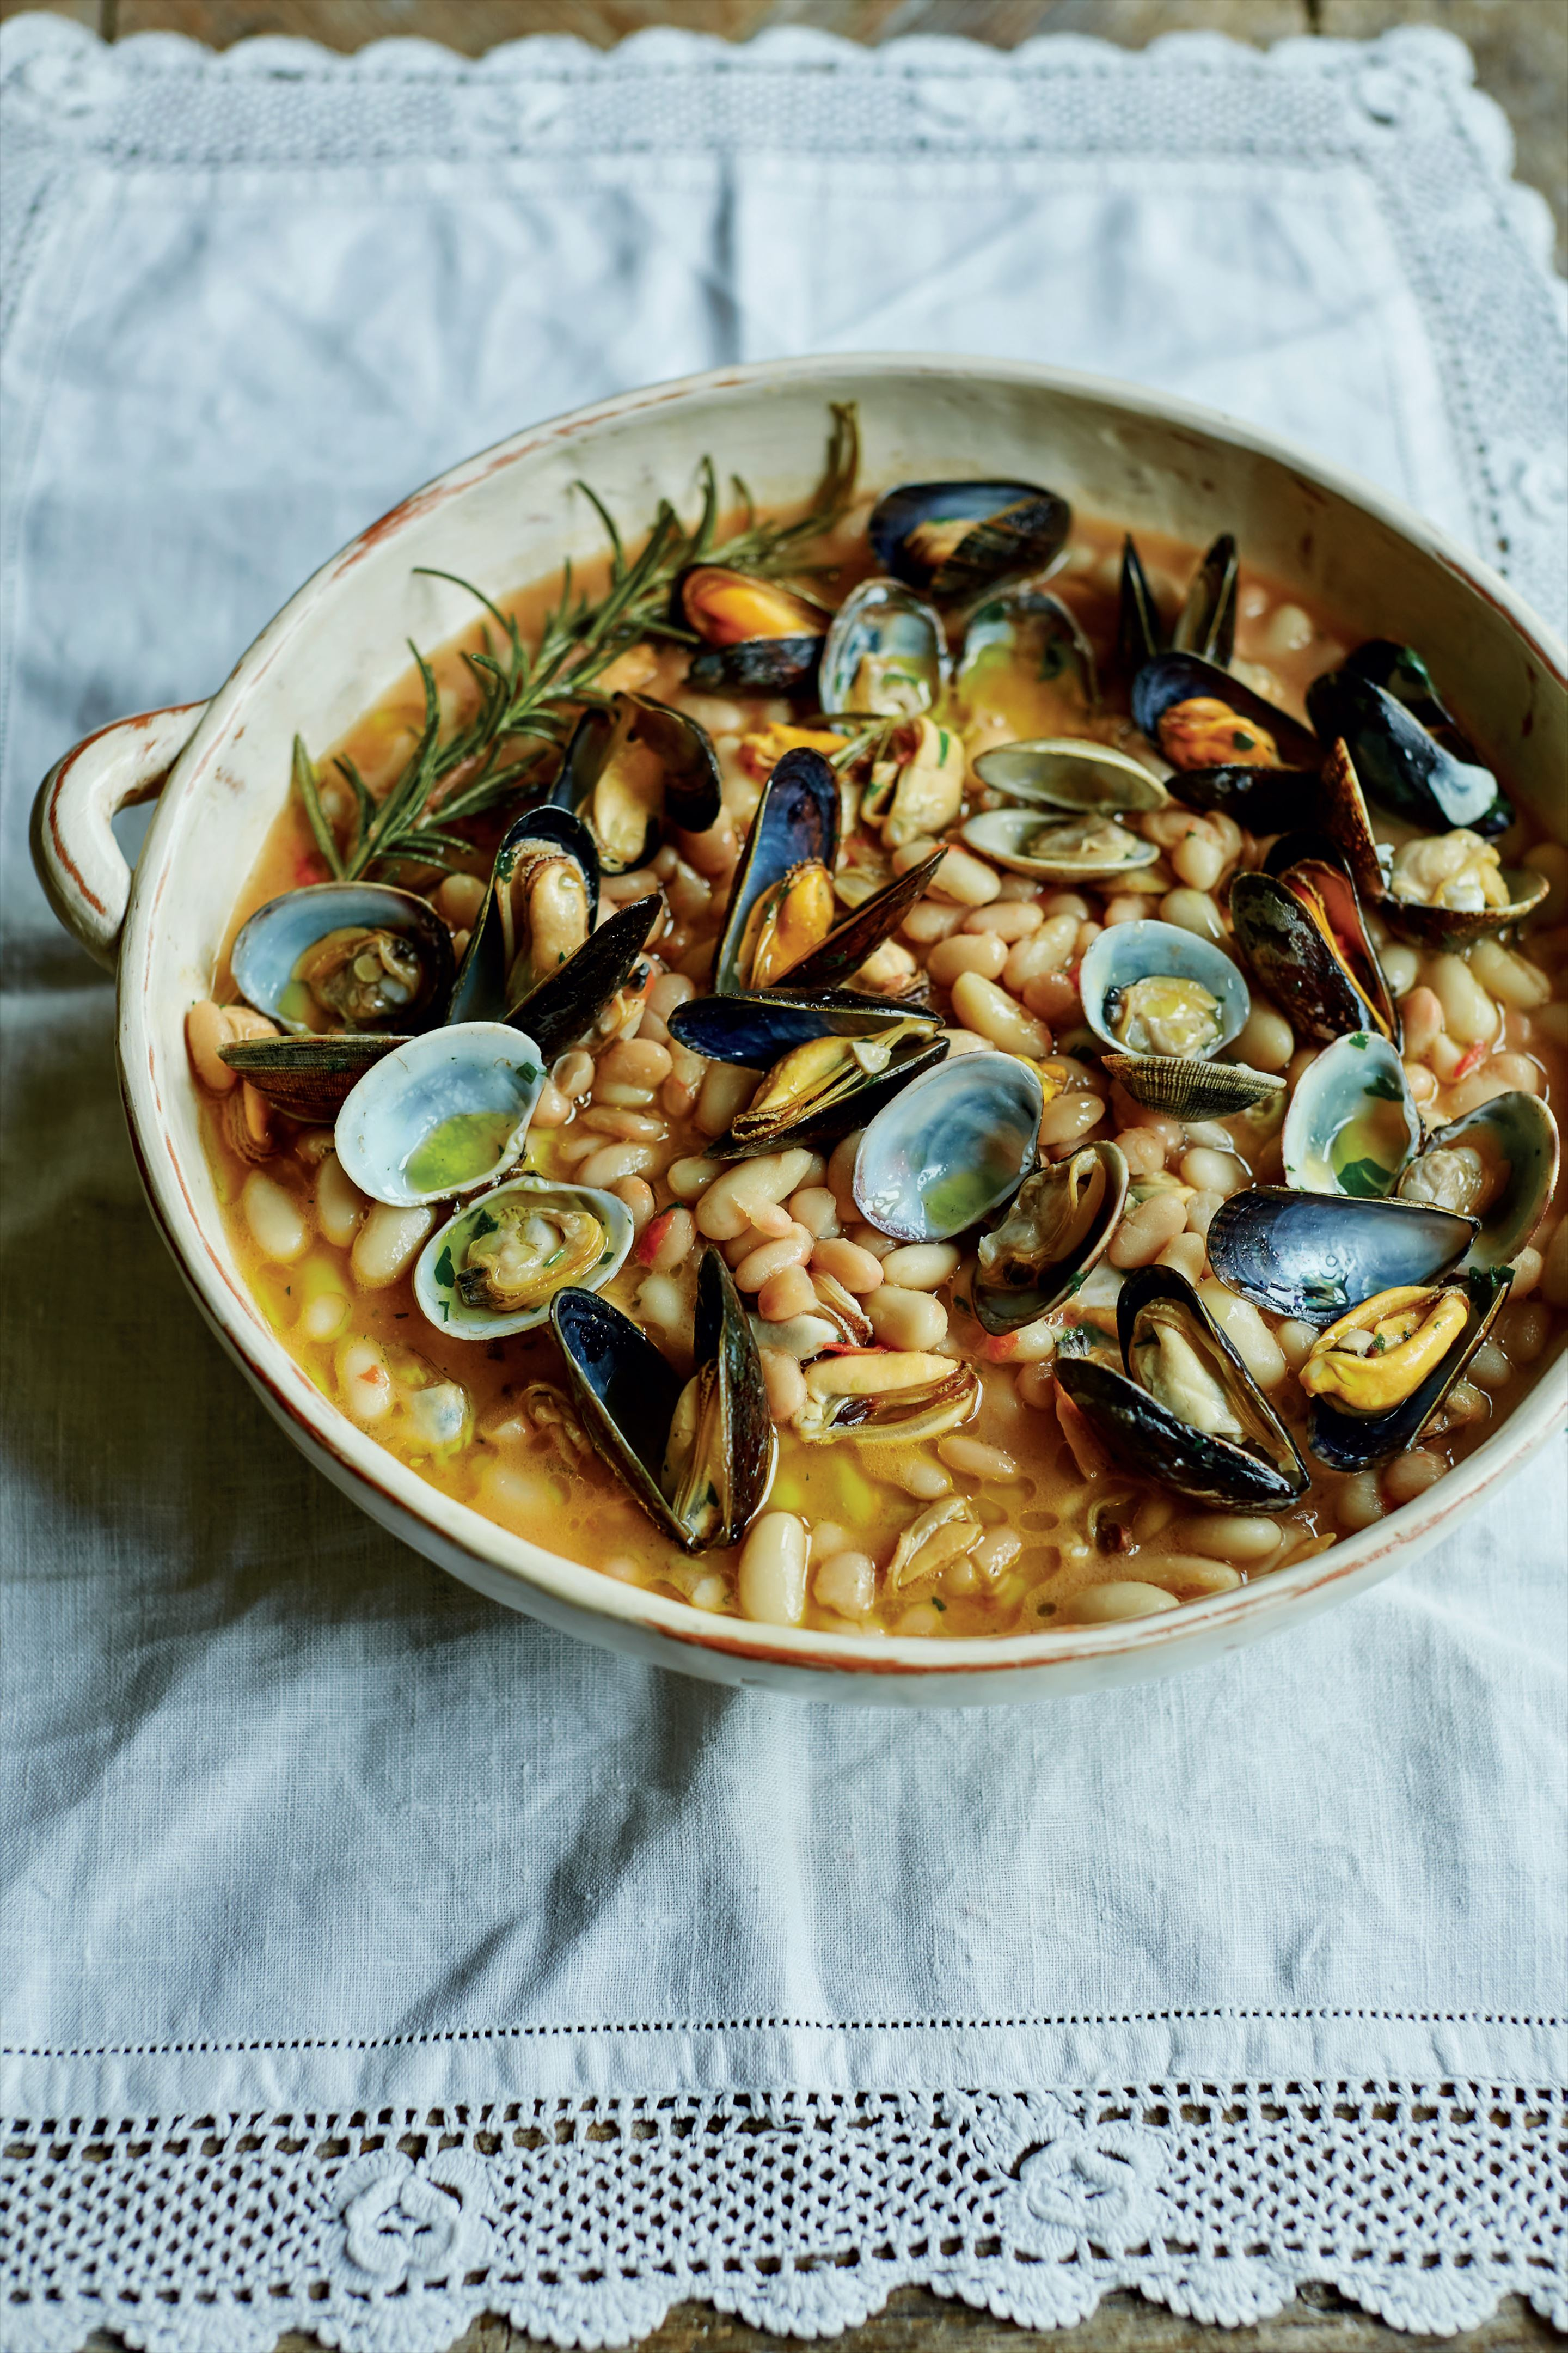 Cannellini beans with mussels and clams